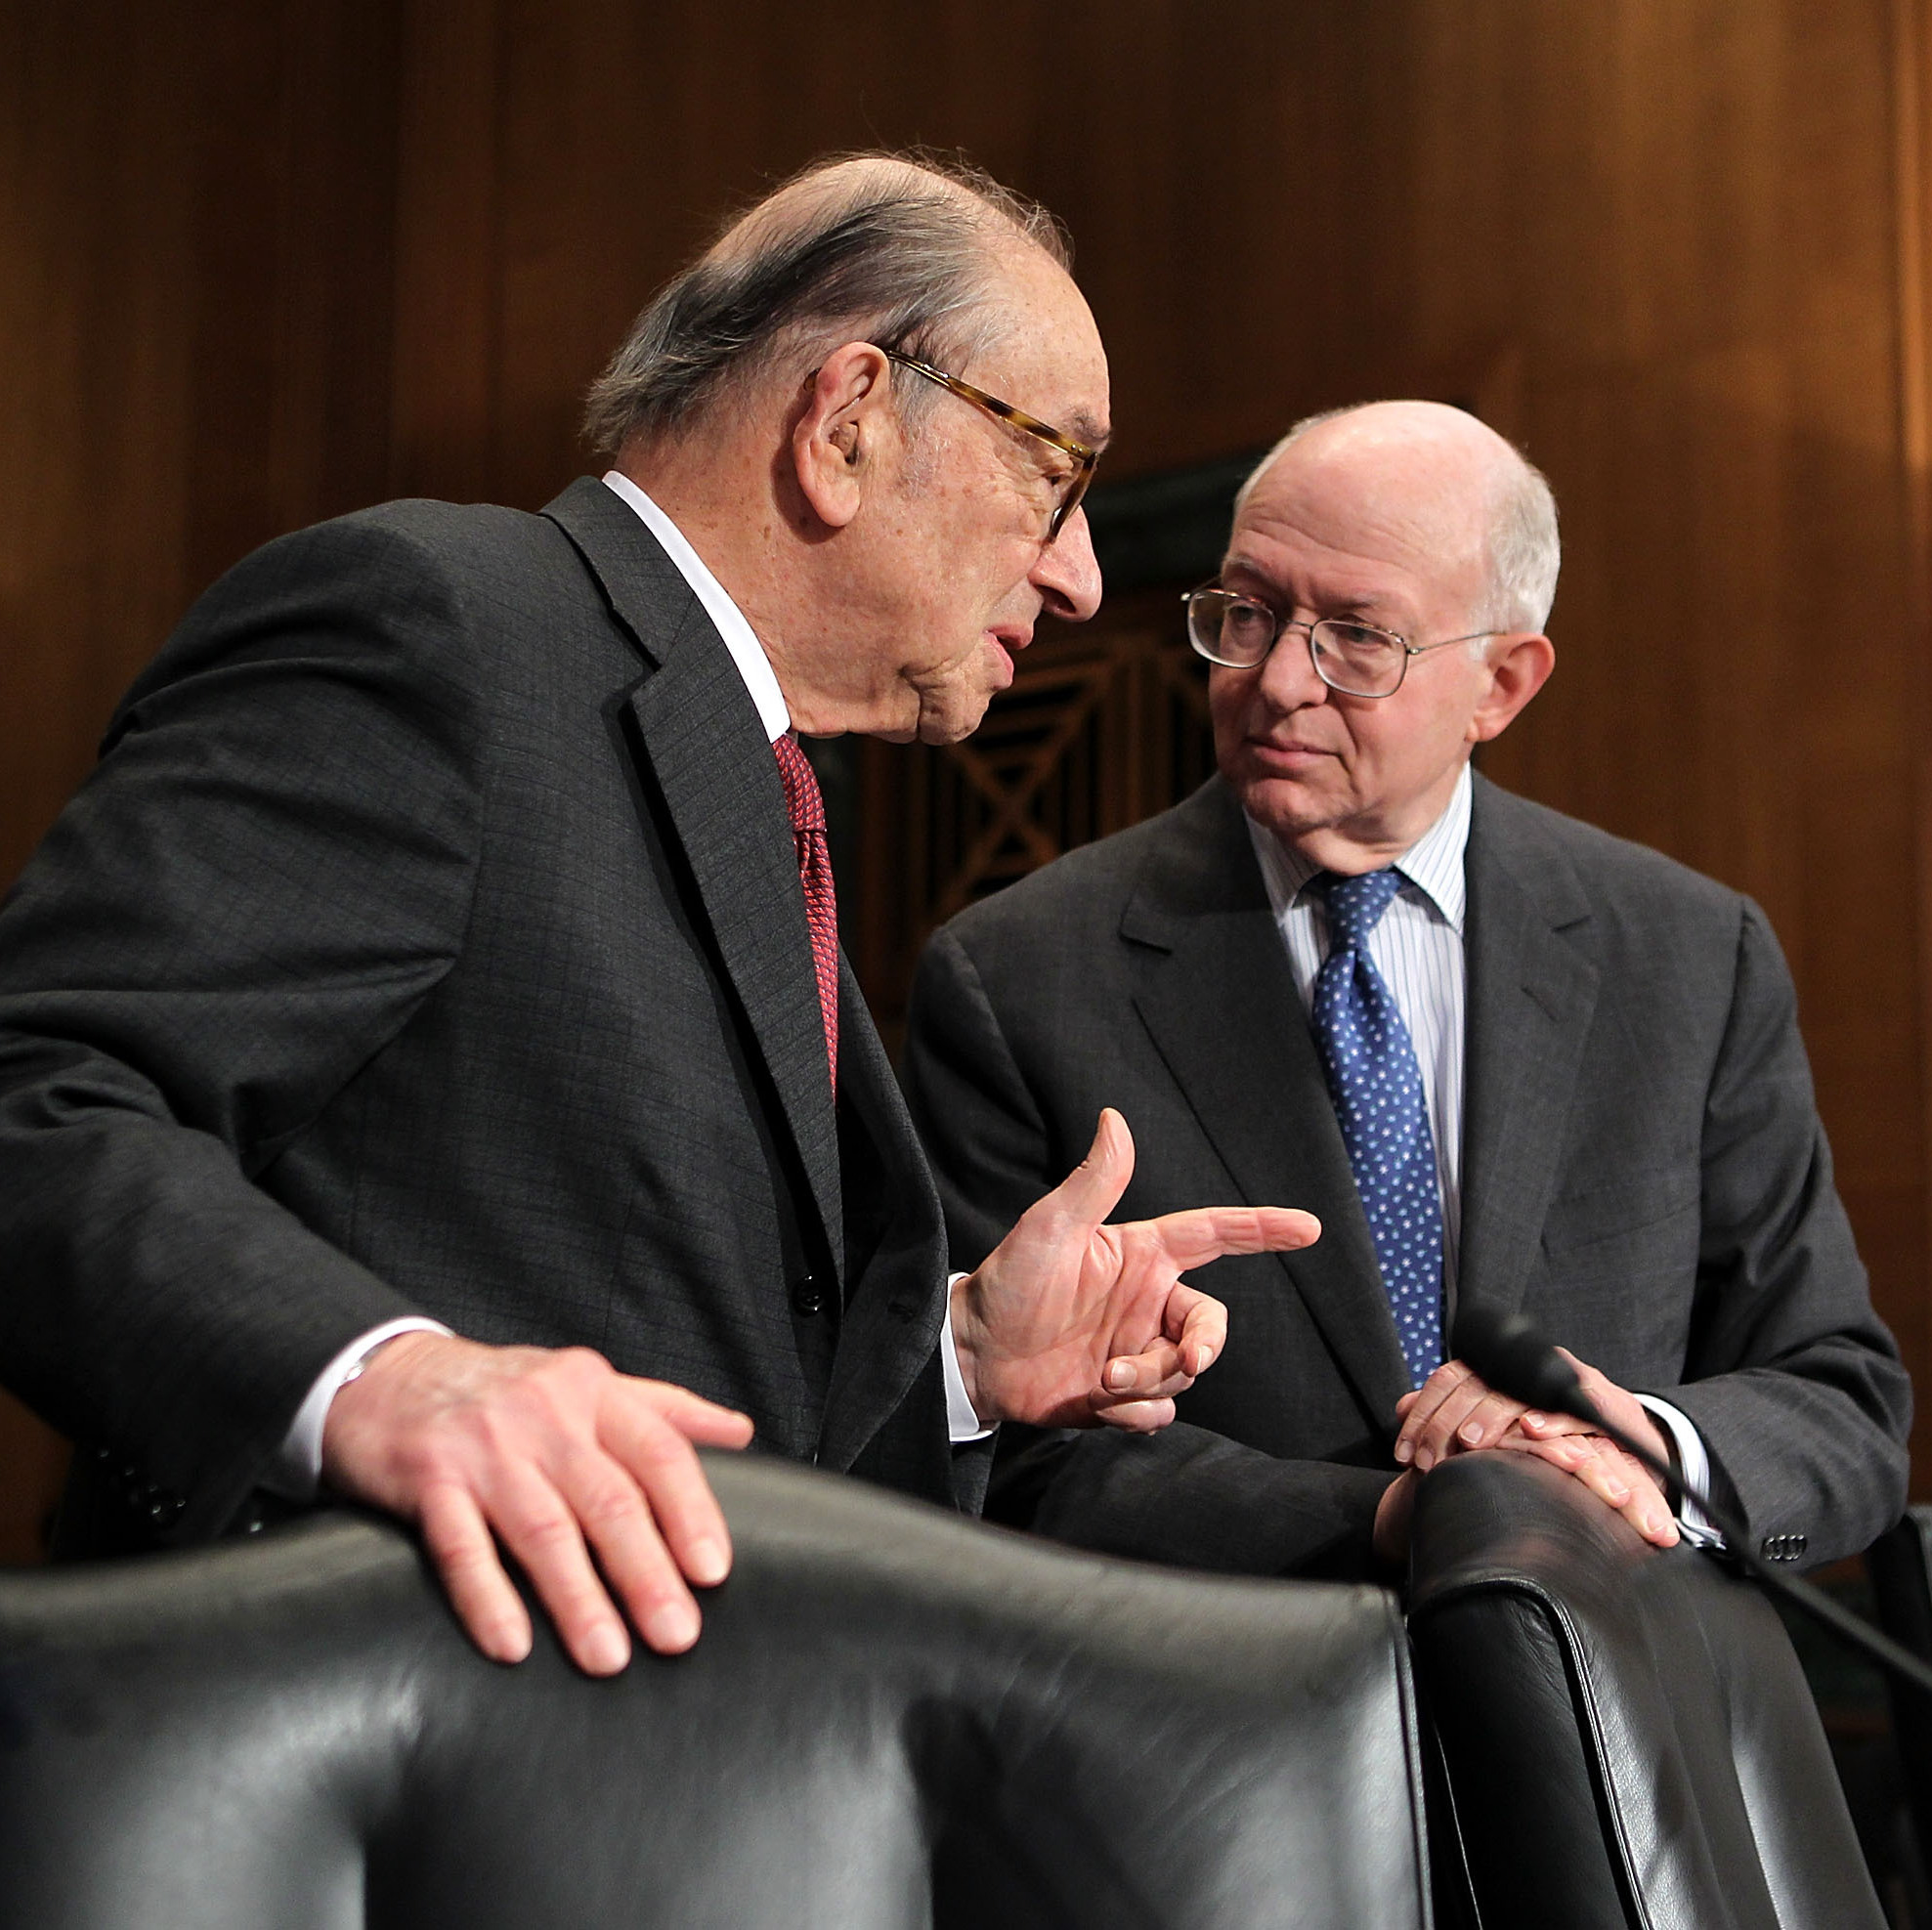 Stanford economics professor John Taylor (right) could be Romney's pick to replace Fed Chairman Ben Bernanke. Here, he speaks with former Federal Reserve Chairman Alan Greenspan.